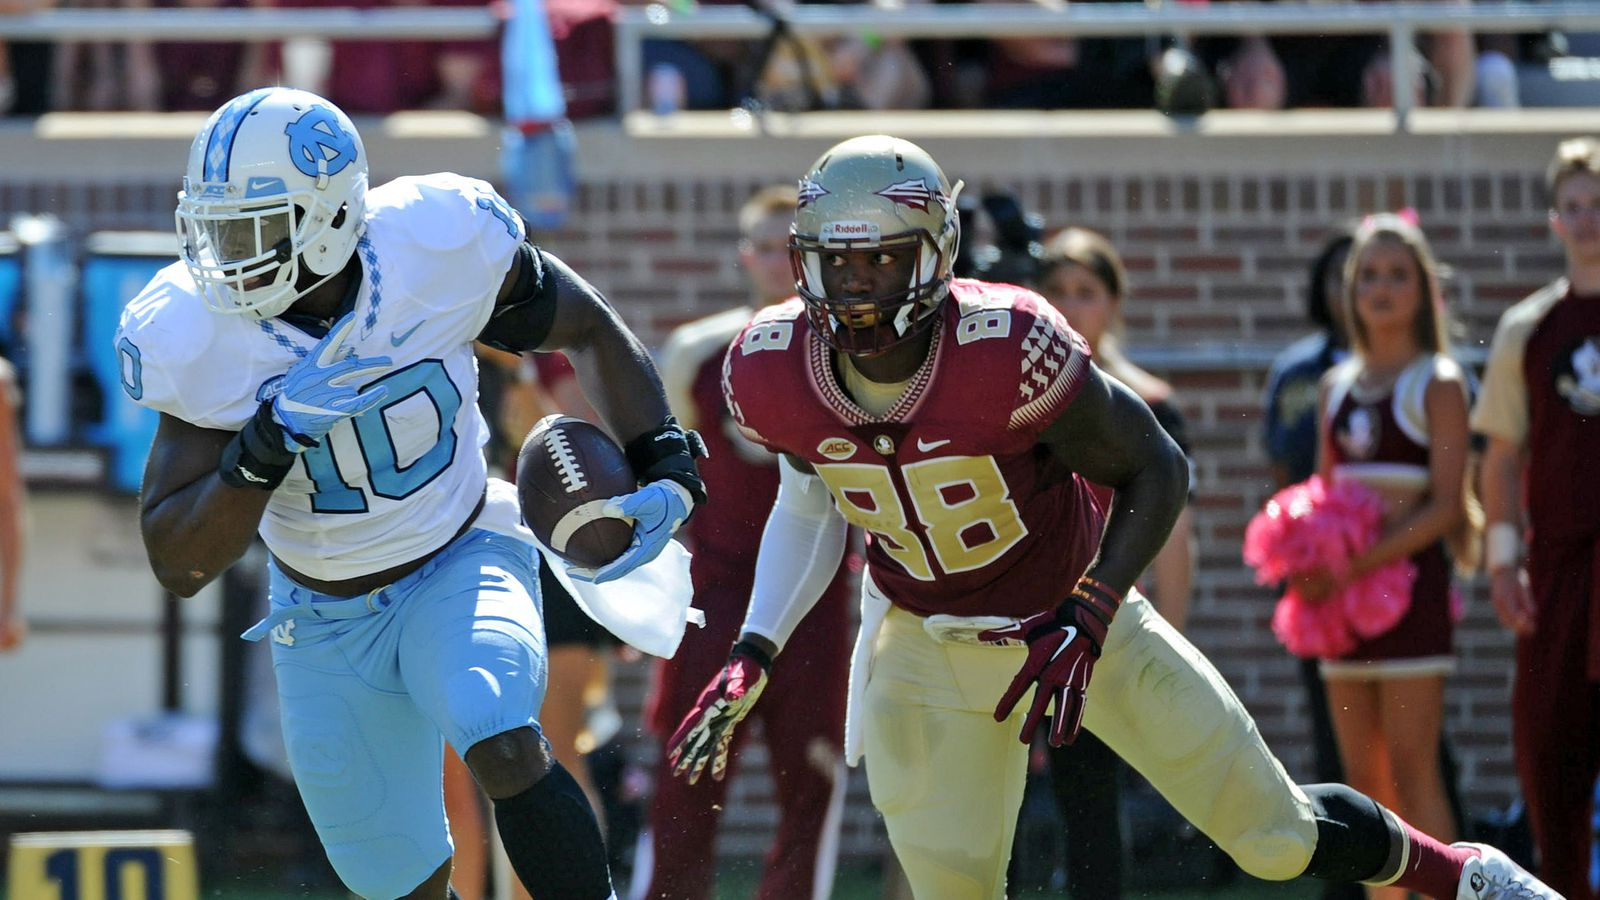 The North Carolina Tar Heels football team represents the University of North Carolina at Chapel Hill in the sport of American football The Tar Heels have played in